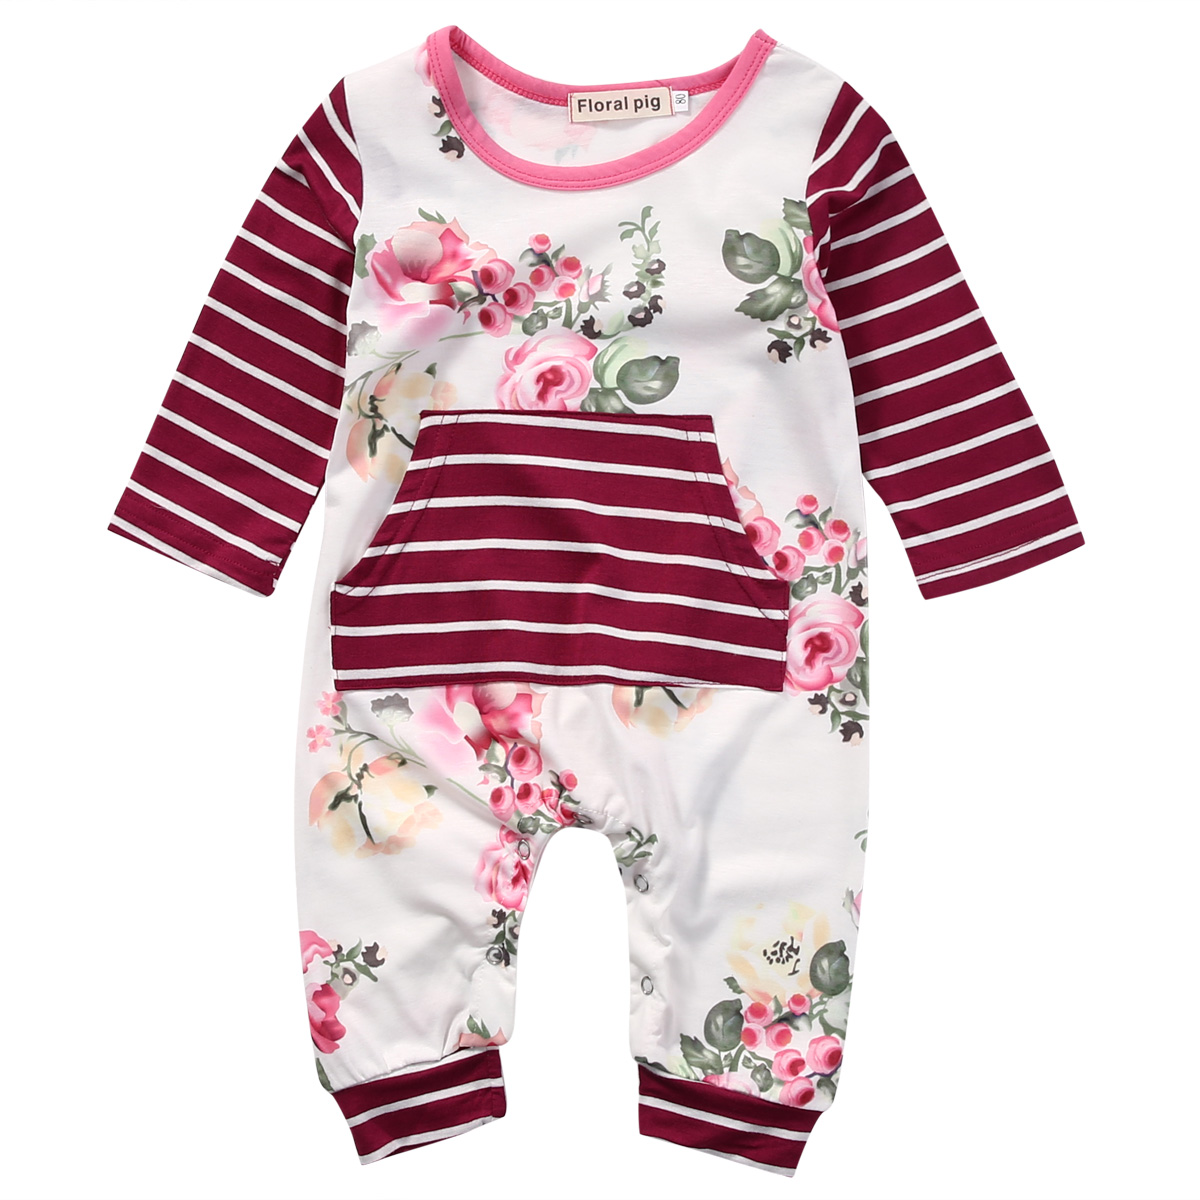 2017 New Floral Romper Infant Bebes Boy Girl Clothes Long Sleeve Newborn Jumpsuit One Pieces Outfit Tracksuit 0-18M cute newborn baby girls clothes floral infant bebes romper cotton jumpsuit one pieces outfit sunsuit 0 18m